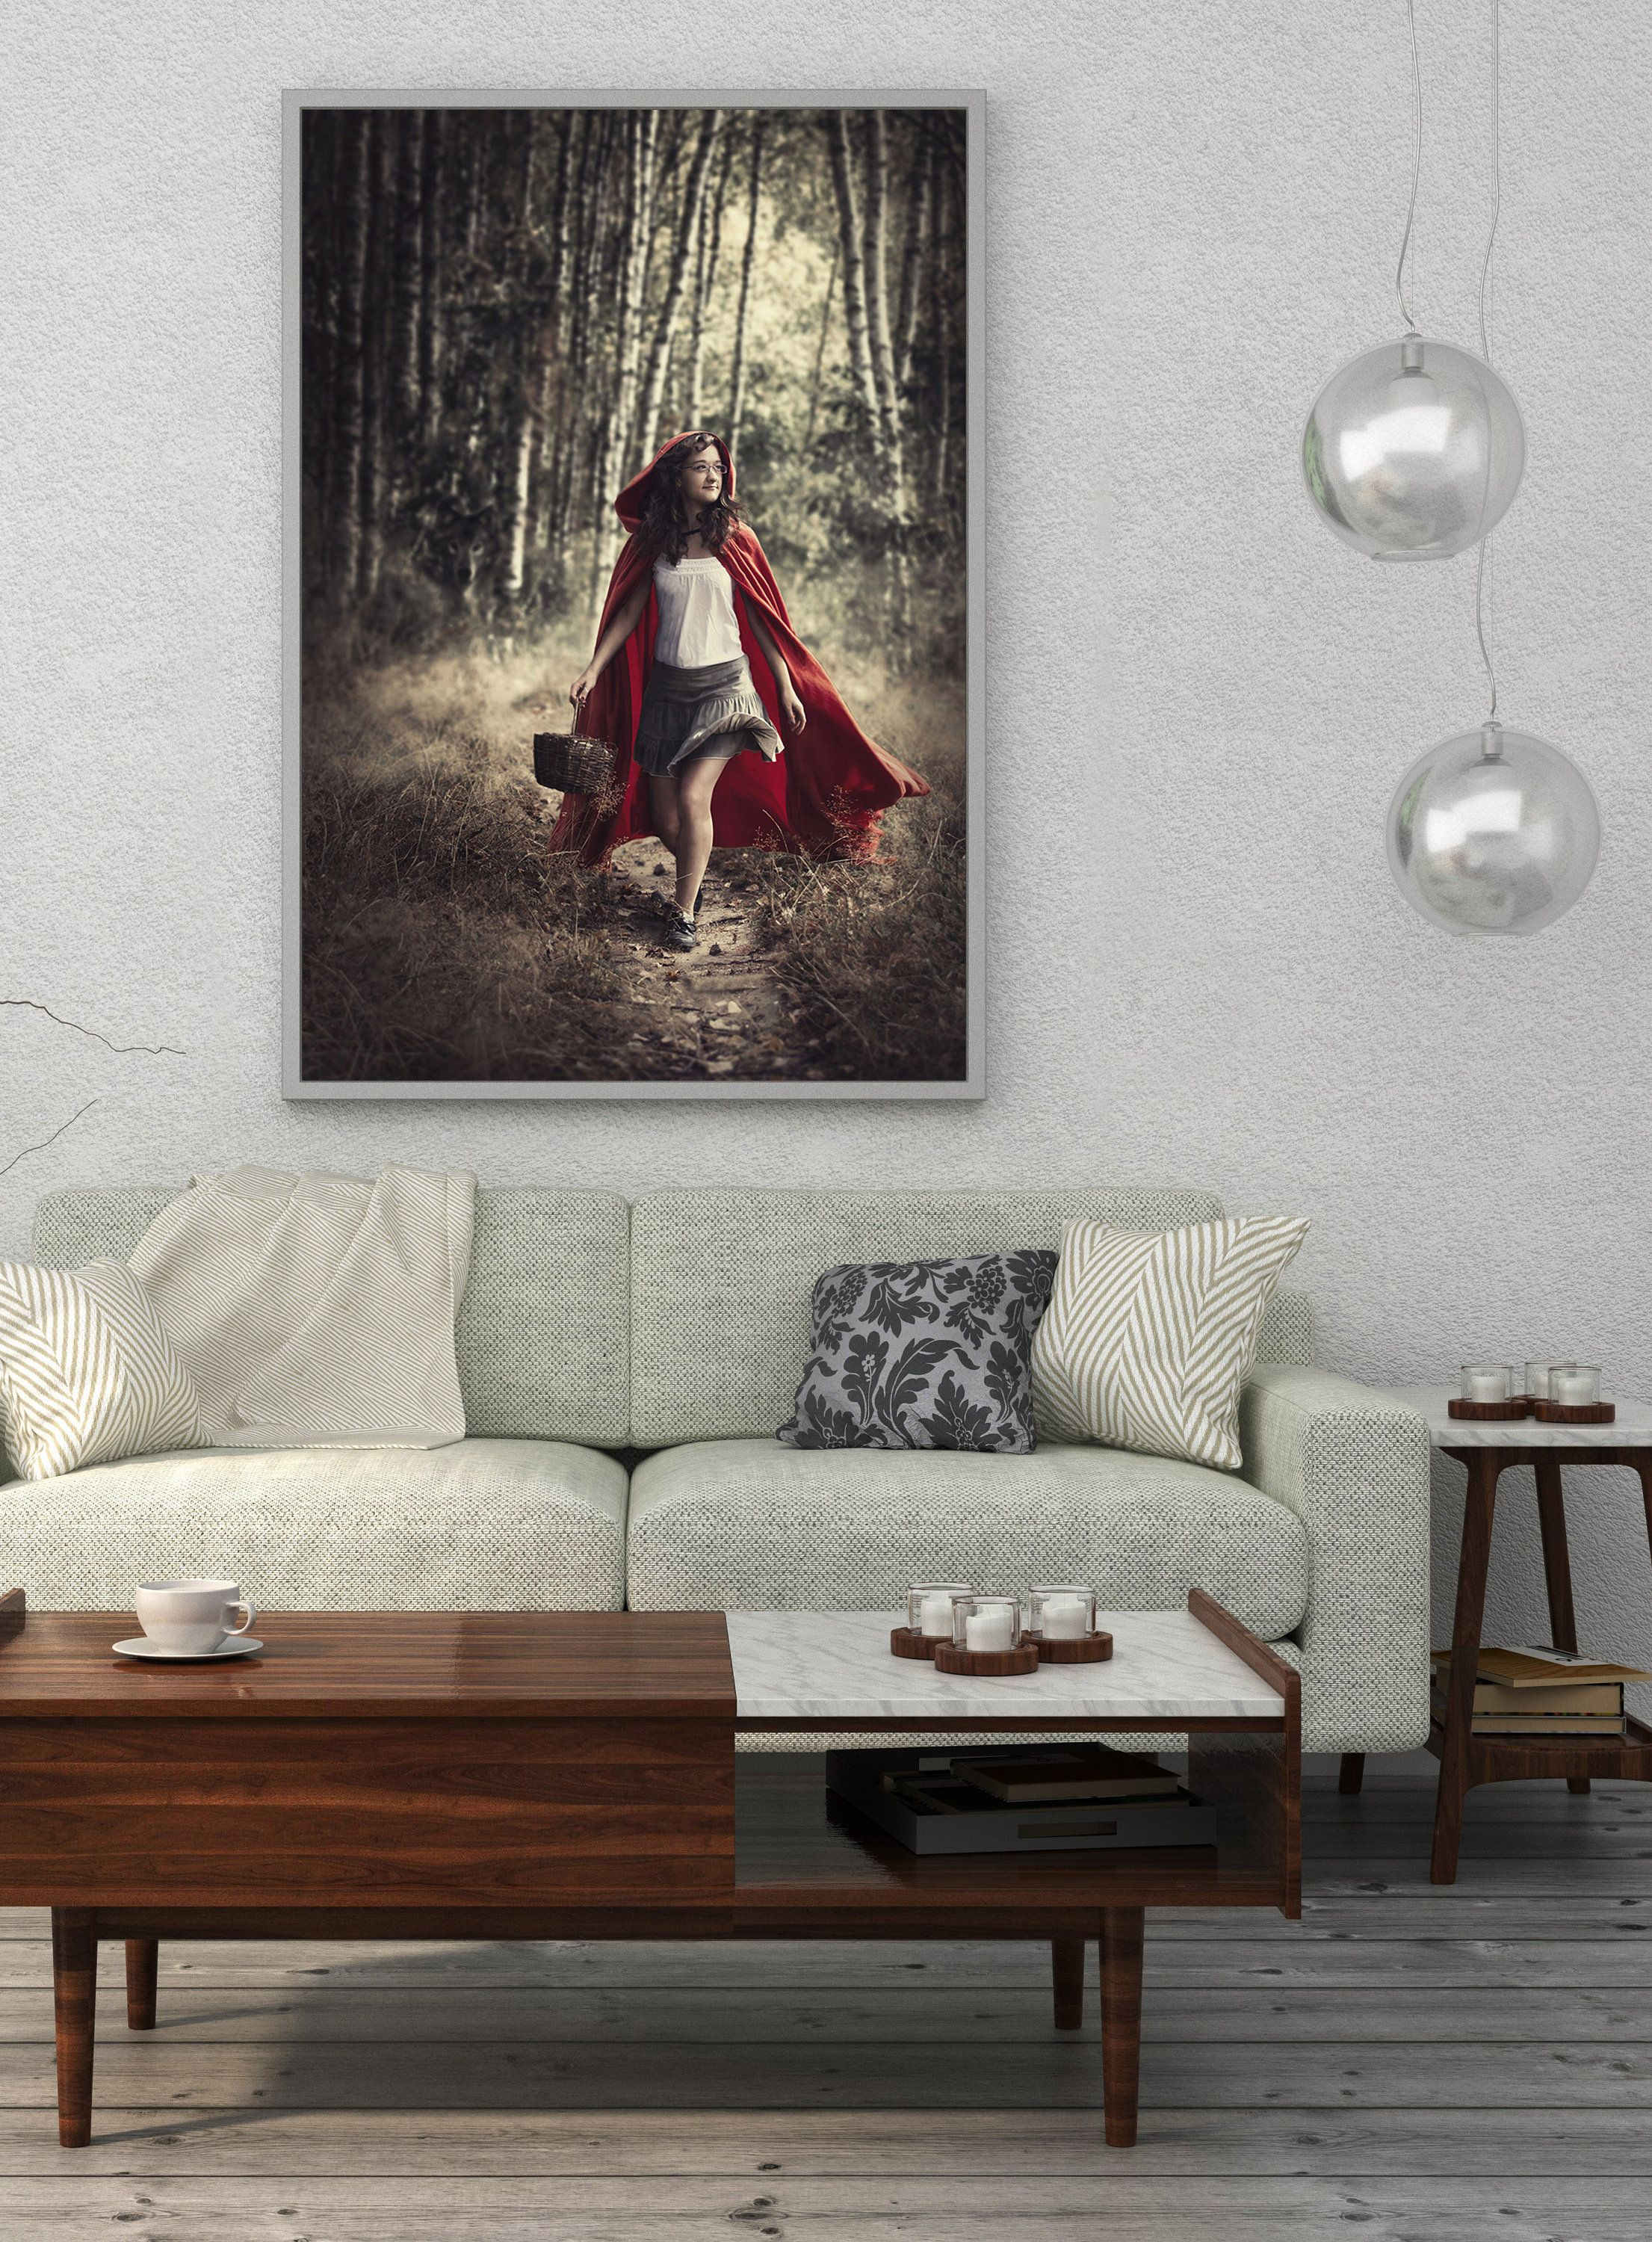 Fine art print red riding hood 1 vertical wall art little red riding hood limited edition prints giclee print fantasy scene fairytale art prints